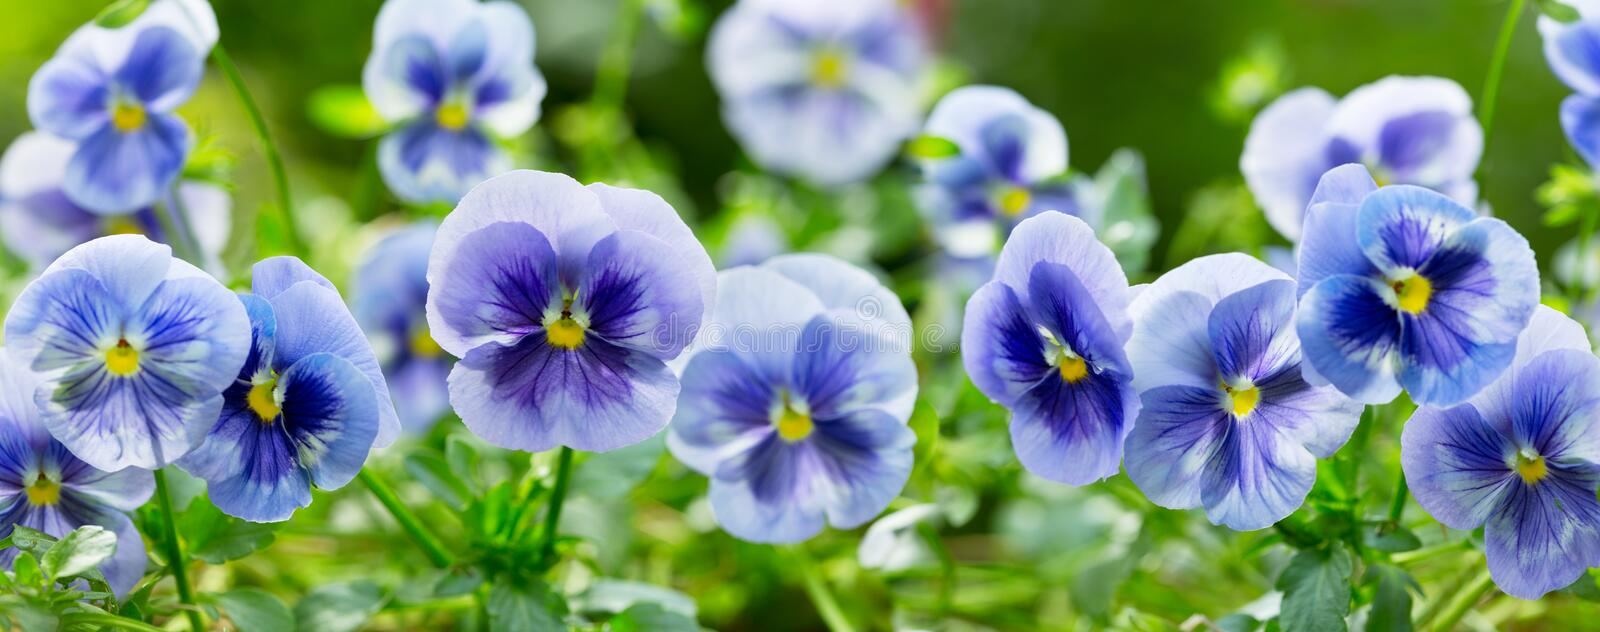 Pansy flower growing in the garden stock images